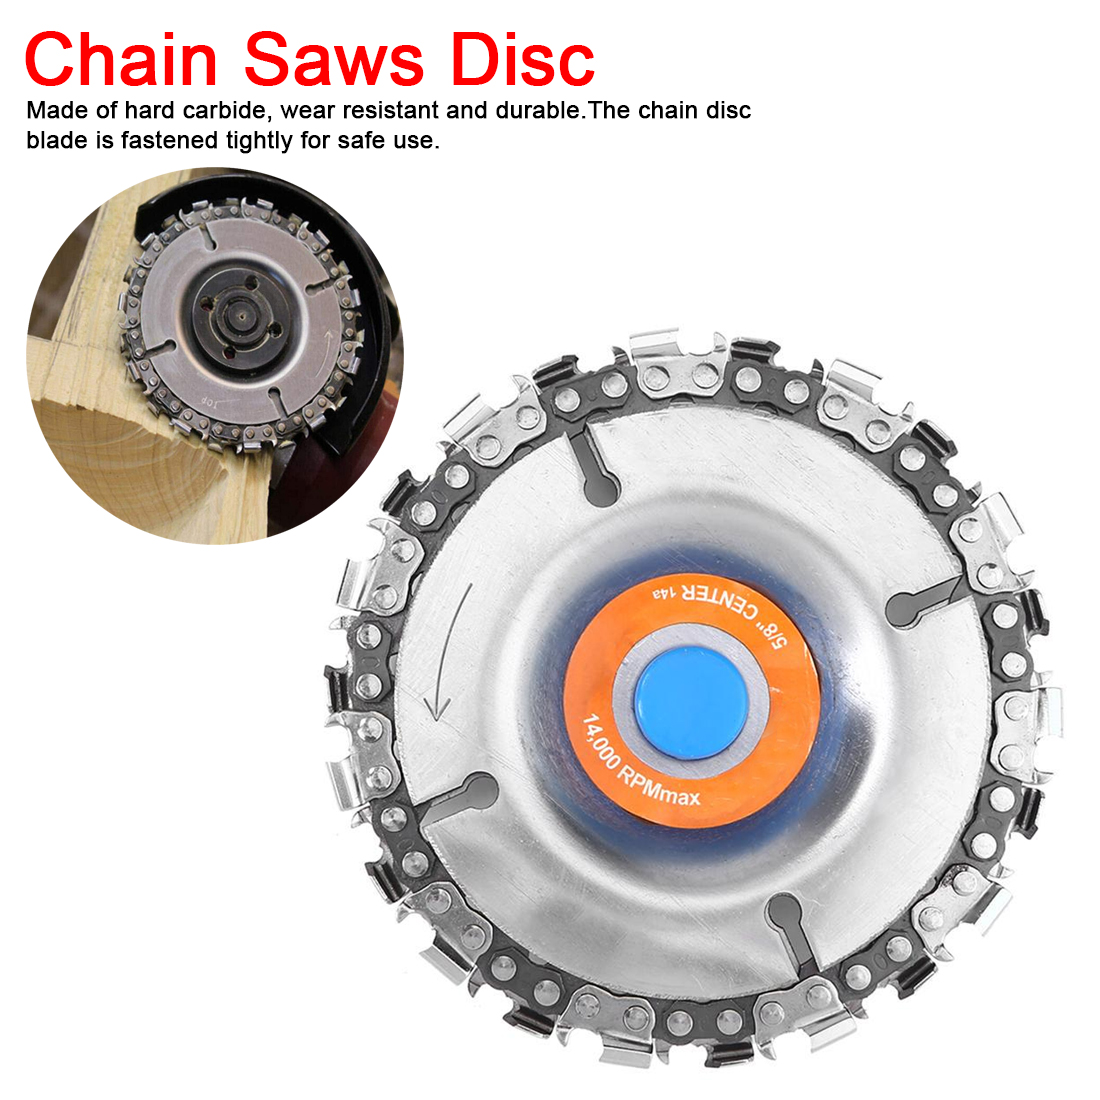 4 Inch 22 Teeth Grinder Chain Disc  5/8 Inch Arbor Wood Carving Disc Saw Blade Cutting Piece Wood Slotted Saw Blade